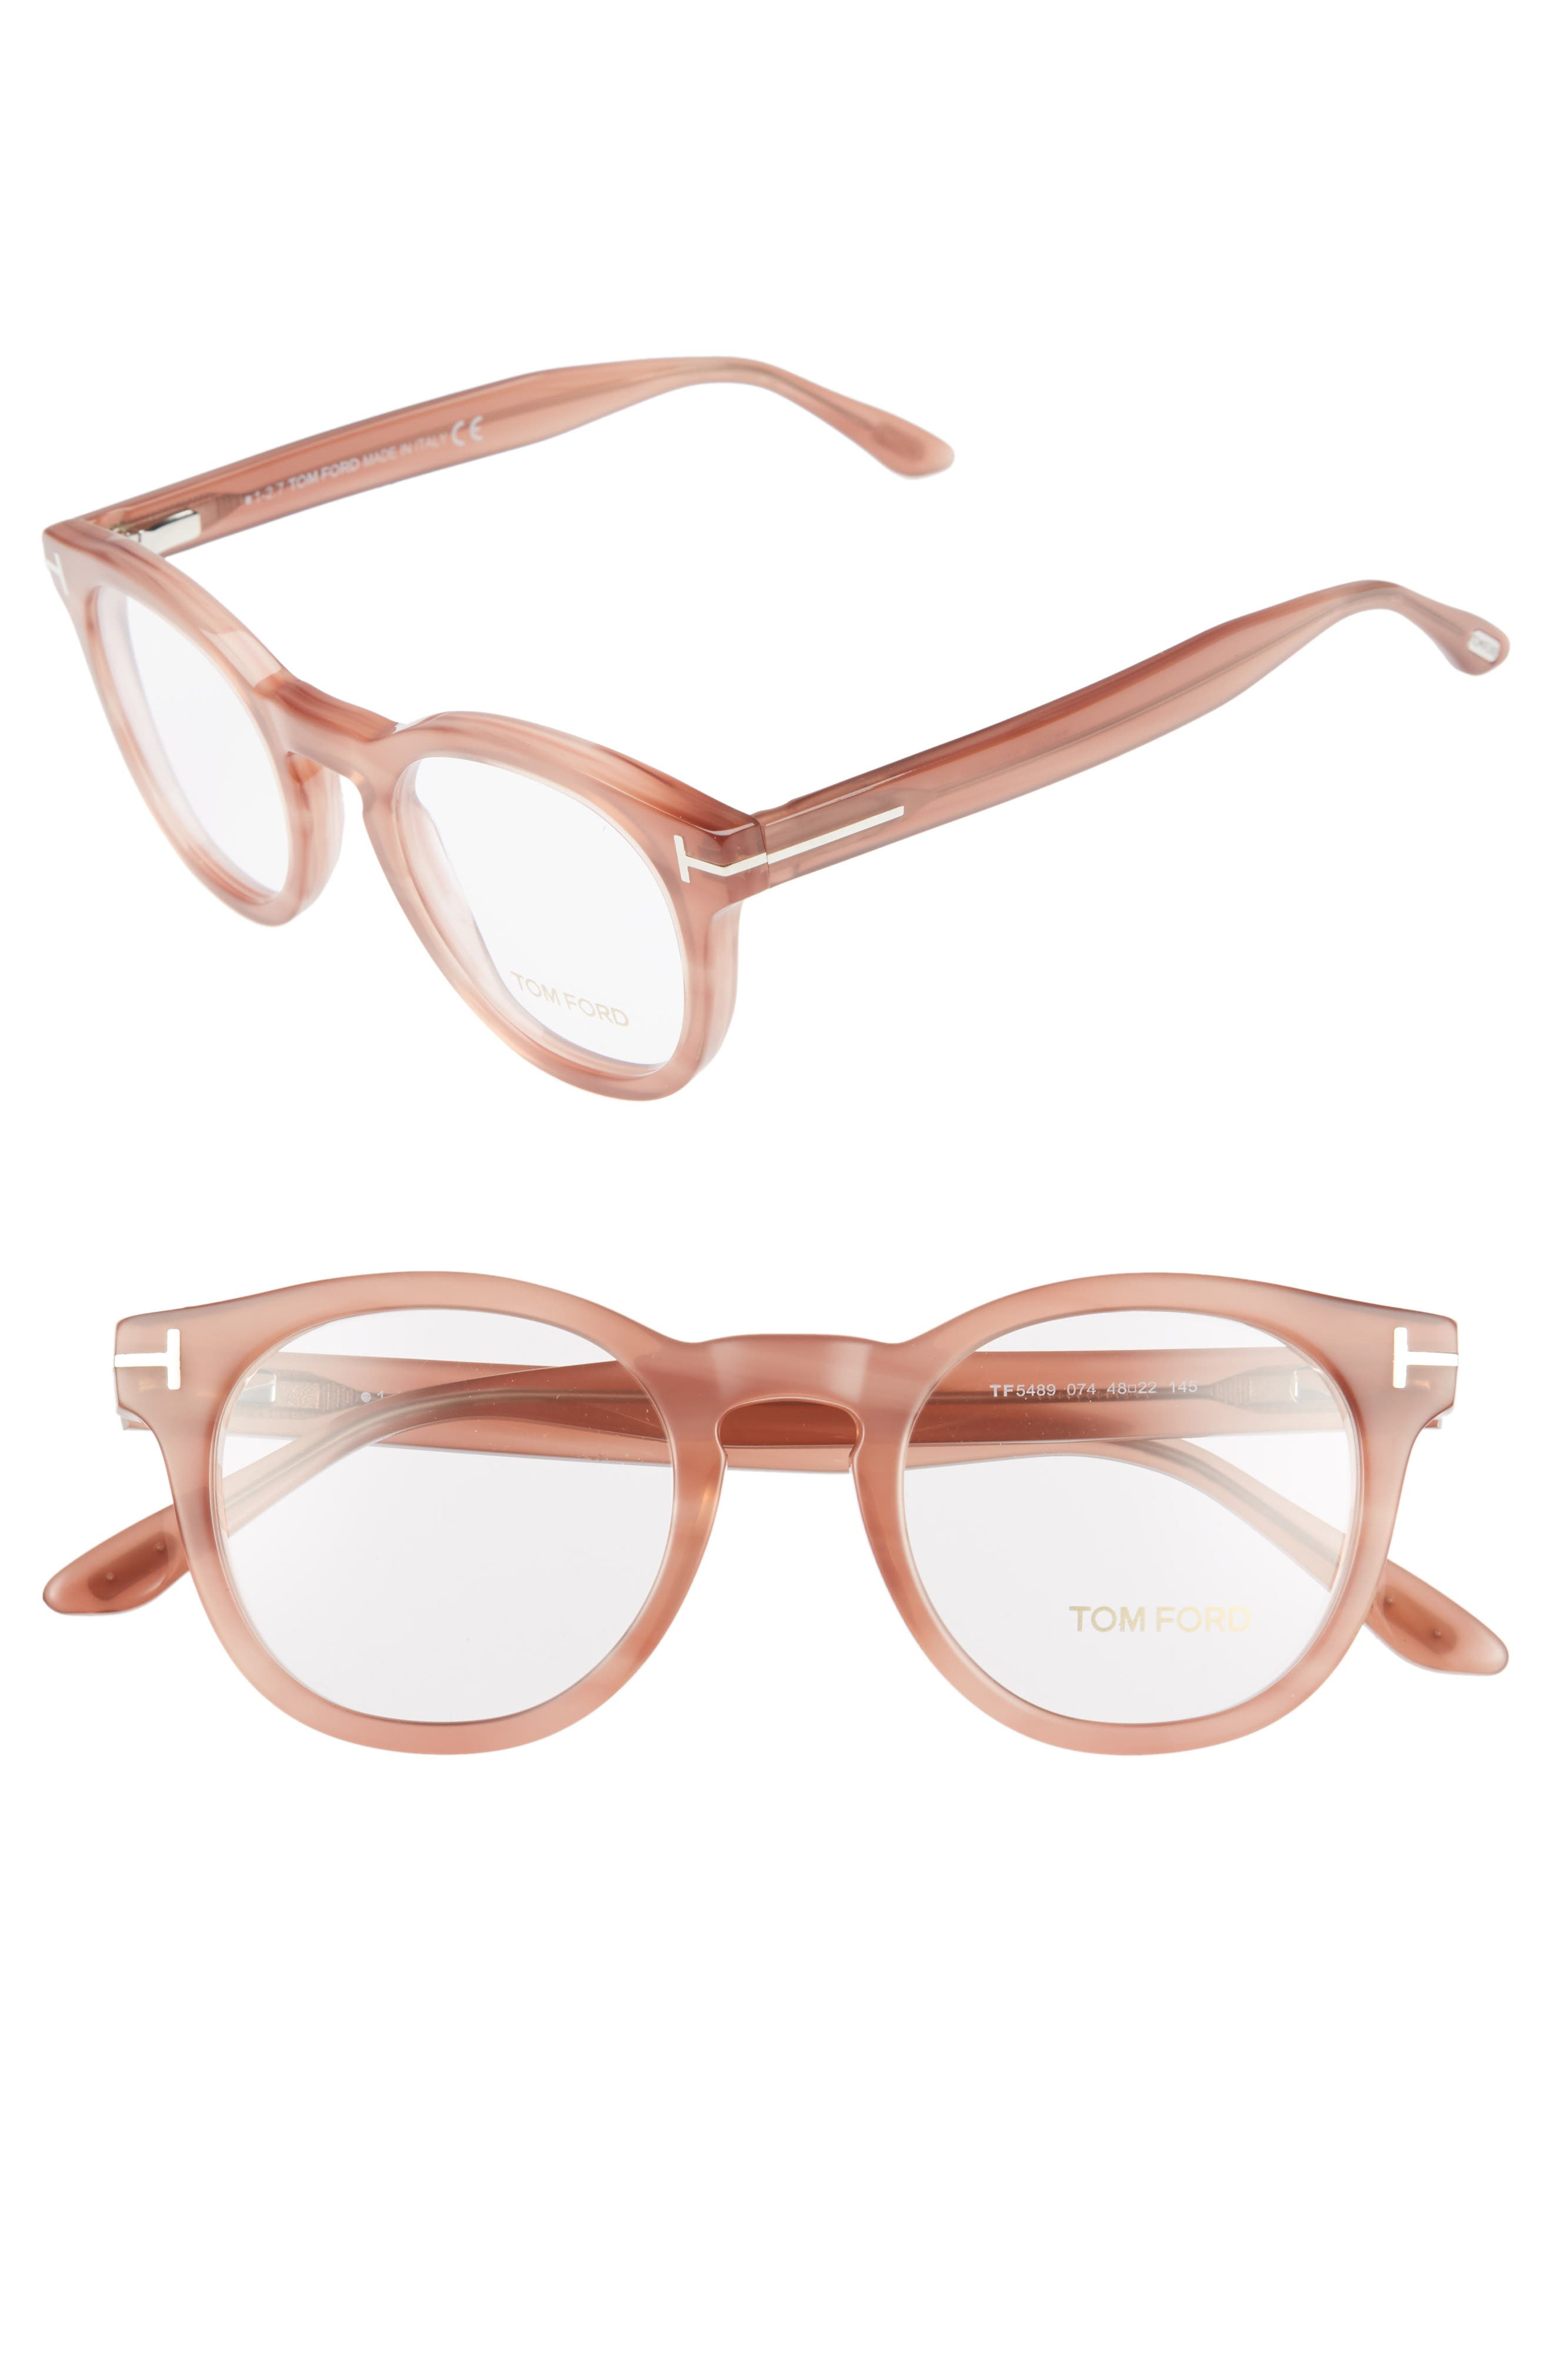 Tom Ford 48mm Round Optical Glasses